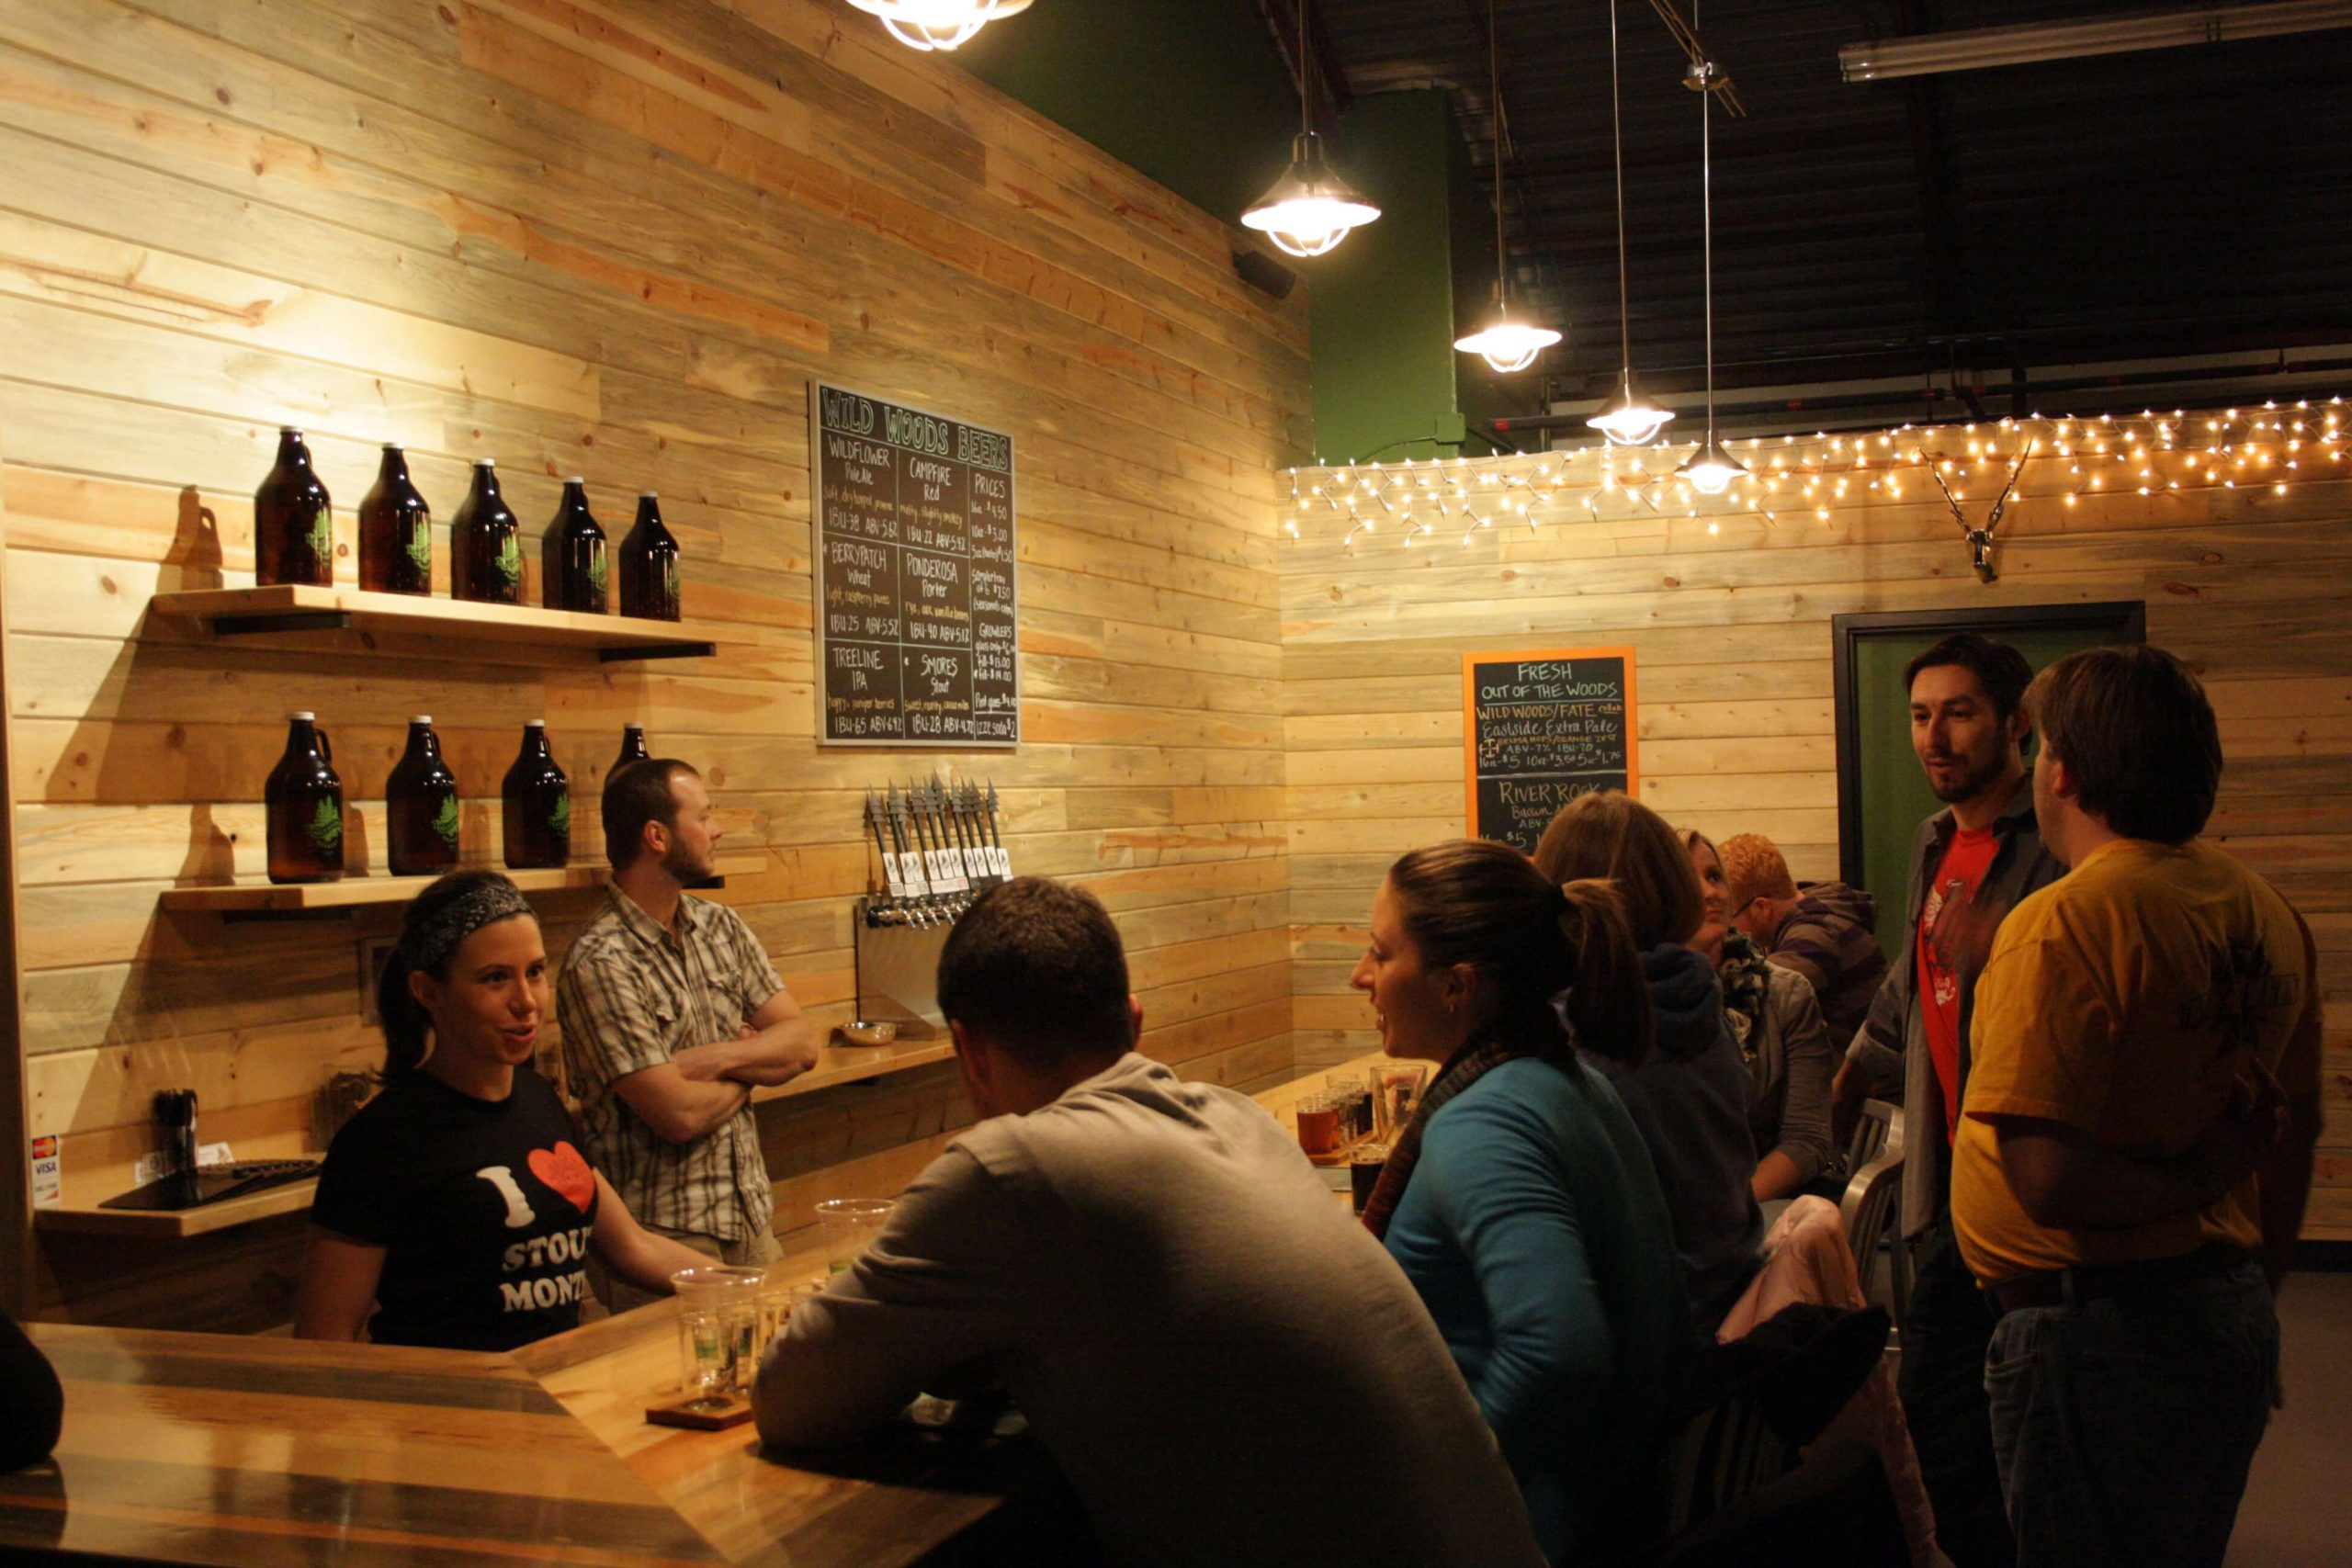 Inside the taproom at Wild Woods Brewery in Boulder, Colorado